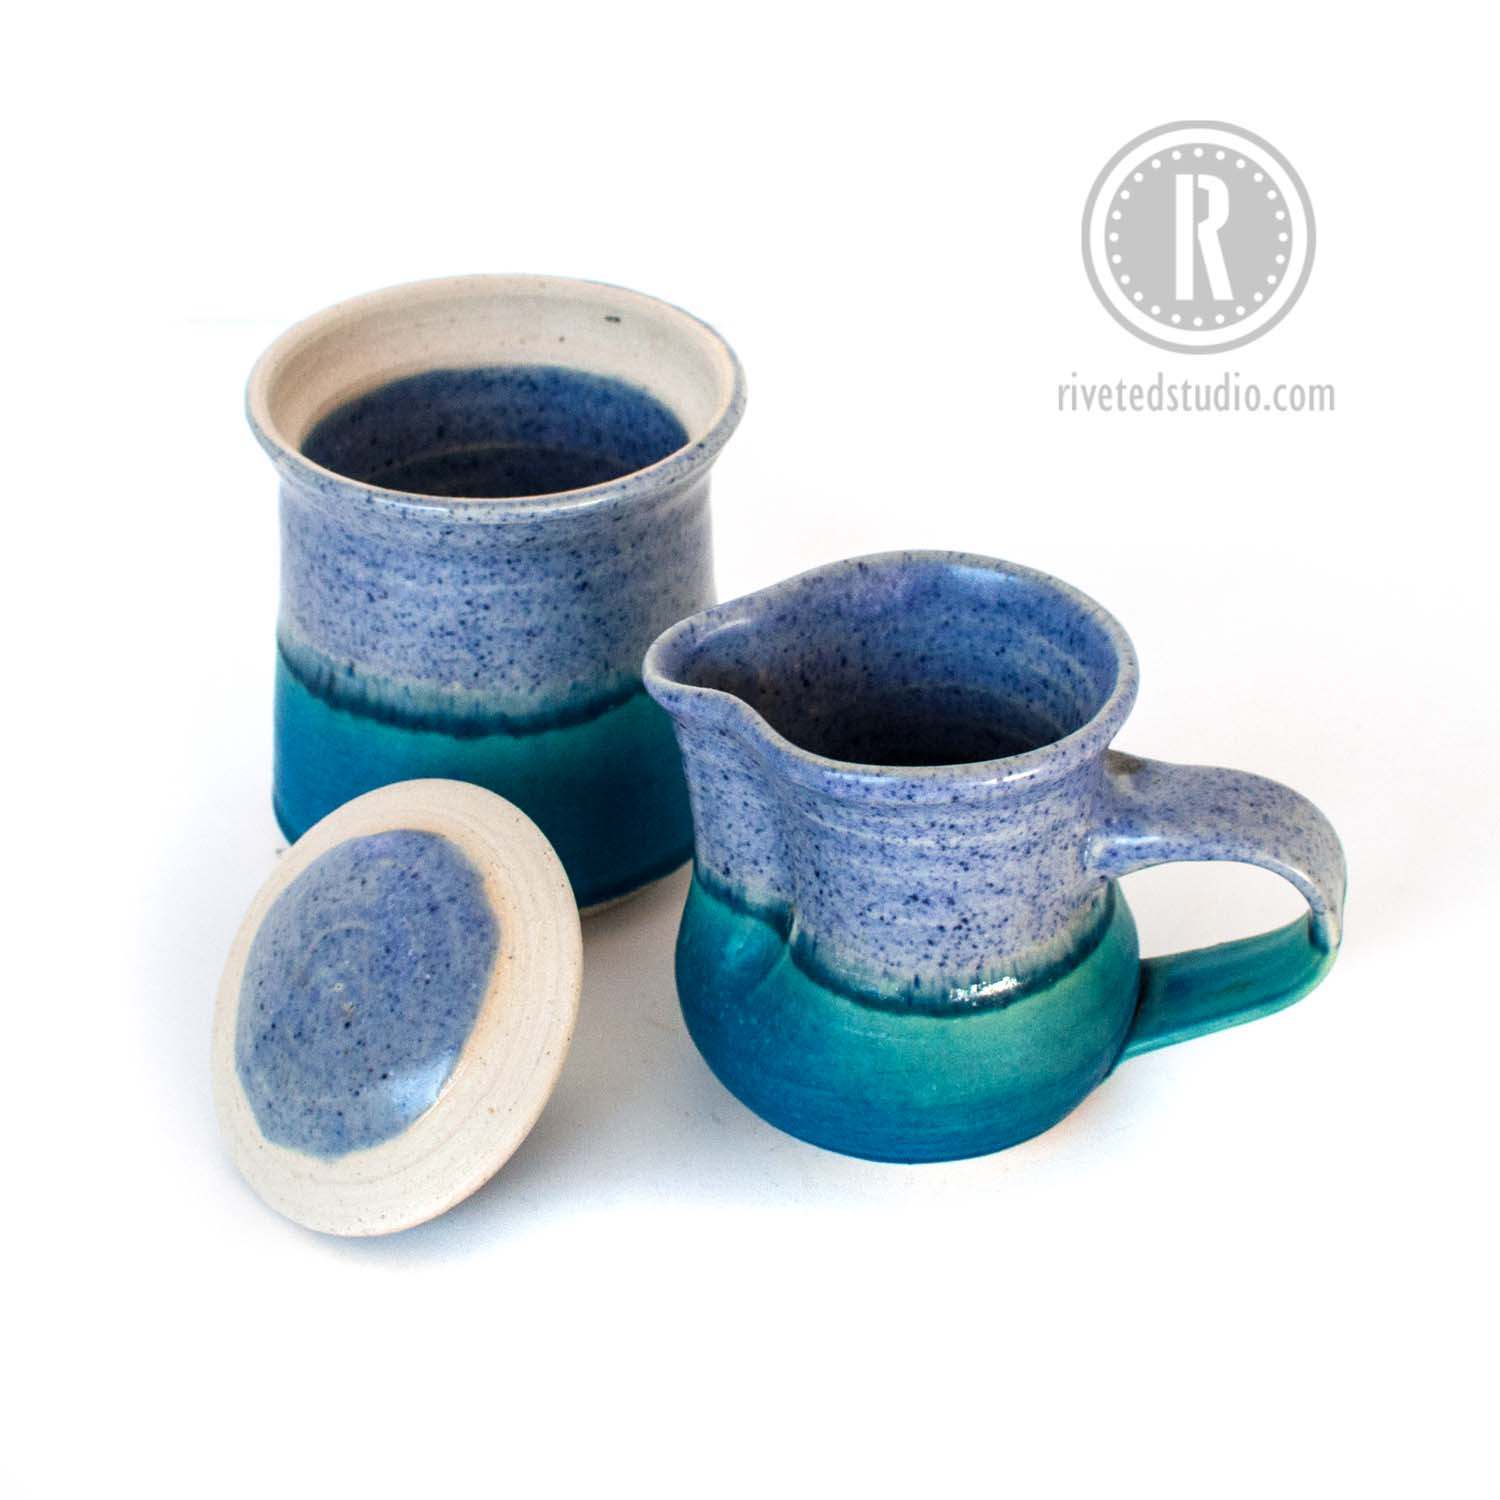 periwinkle and turquoise creamer sugar lid off